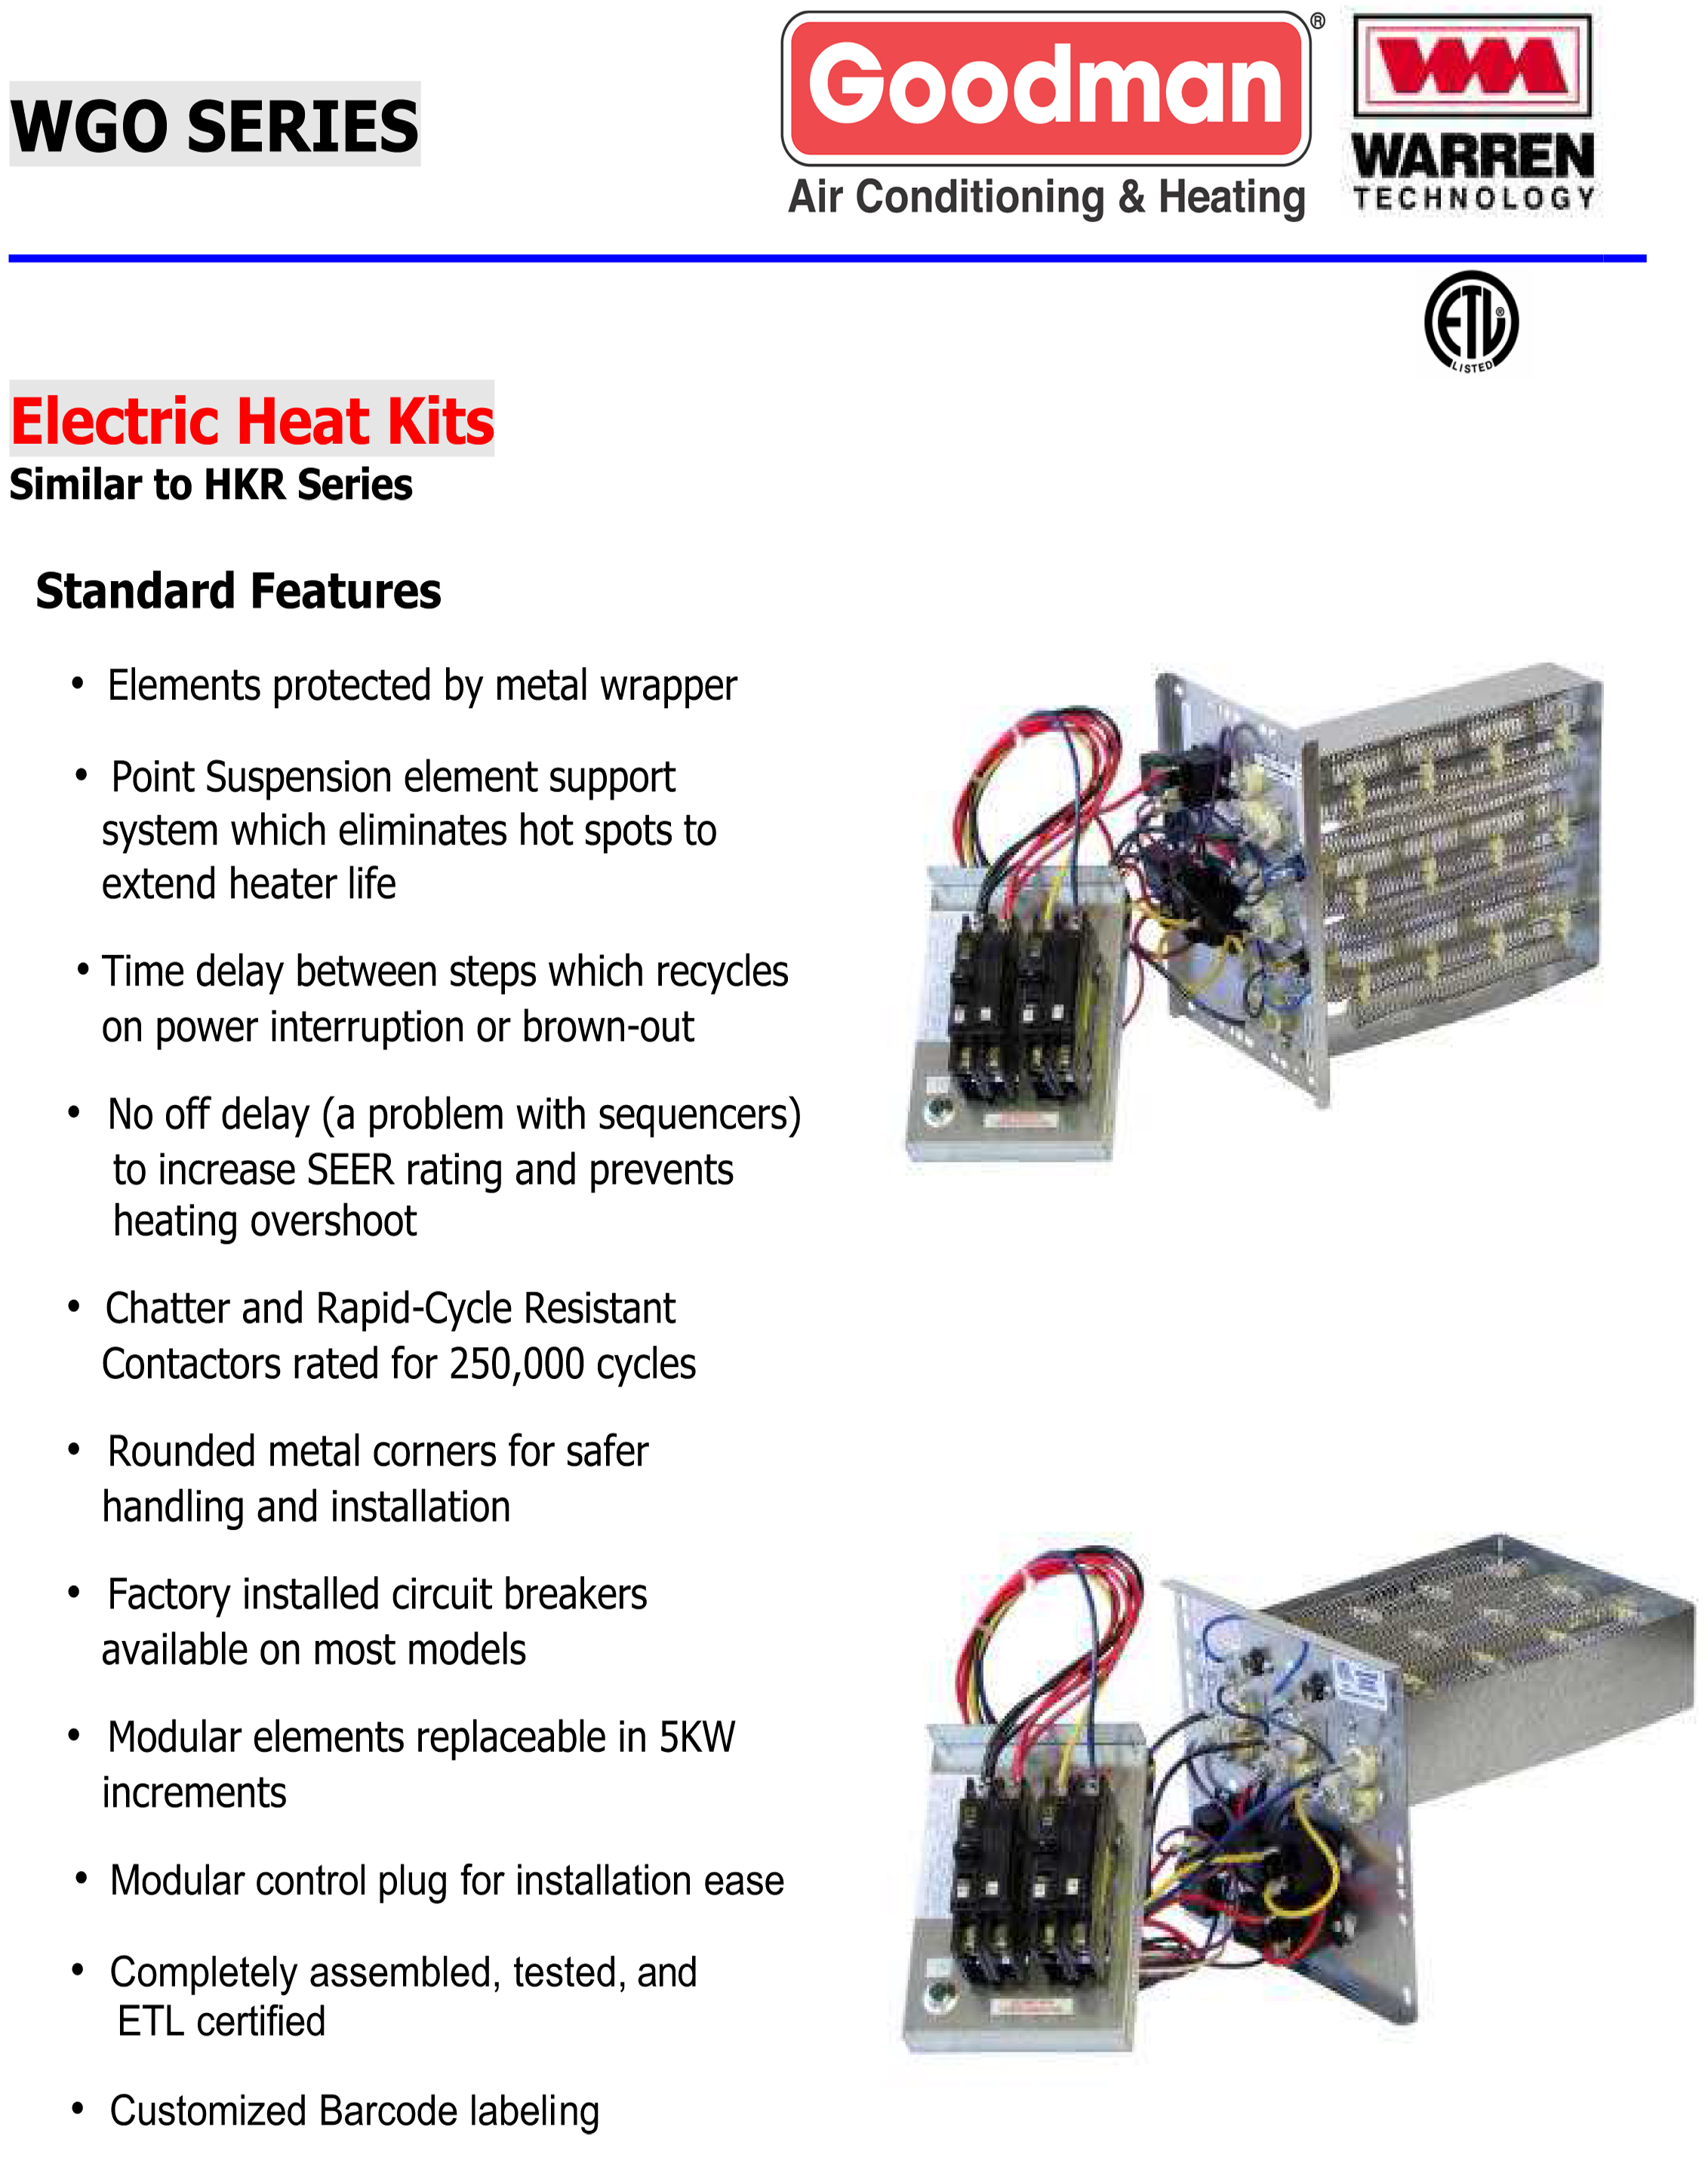 goodman heat pump package unit wiring diagram wiring diagram goodman janitrol amana wgo